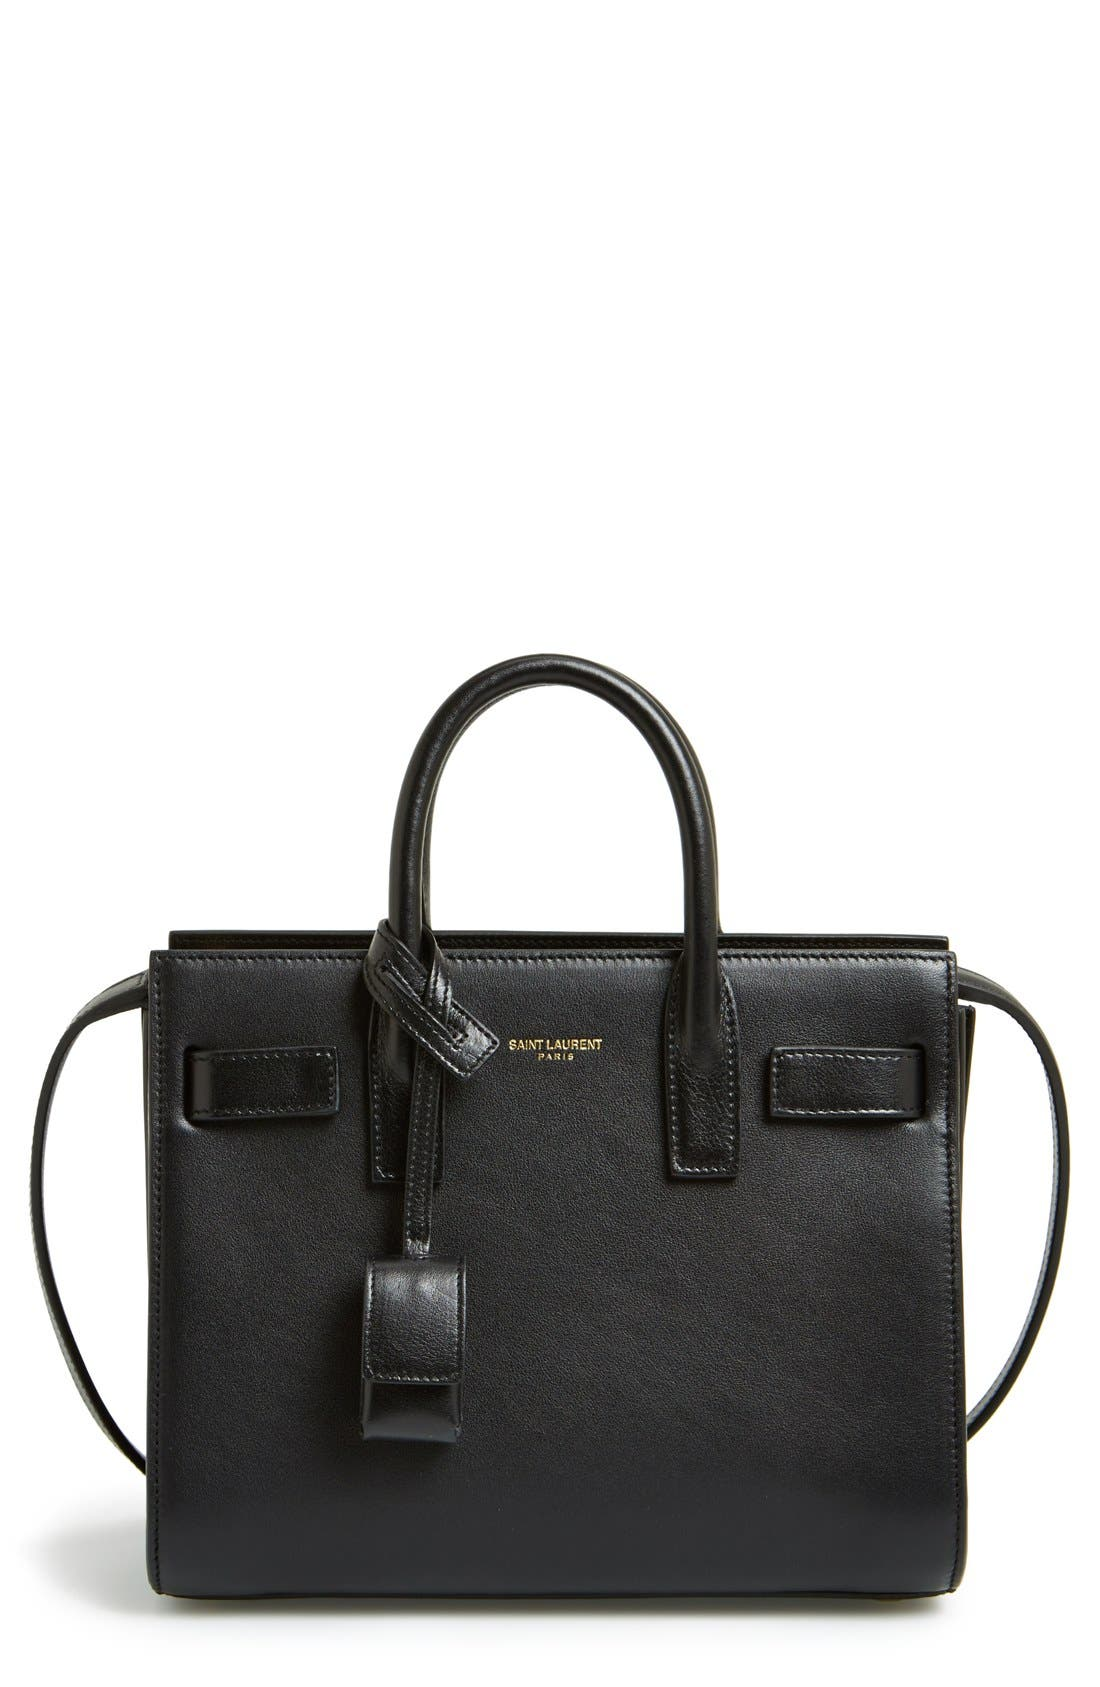 Main Image - Saint Laurent 'Micro Sac de Jour' Leather Tote